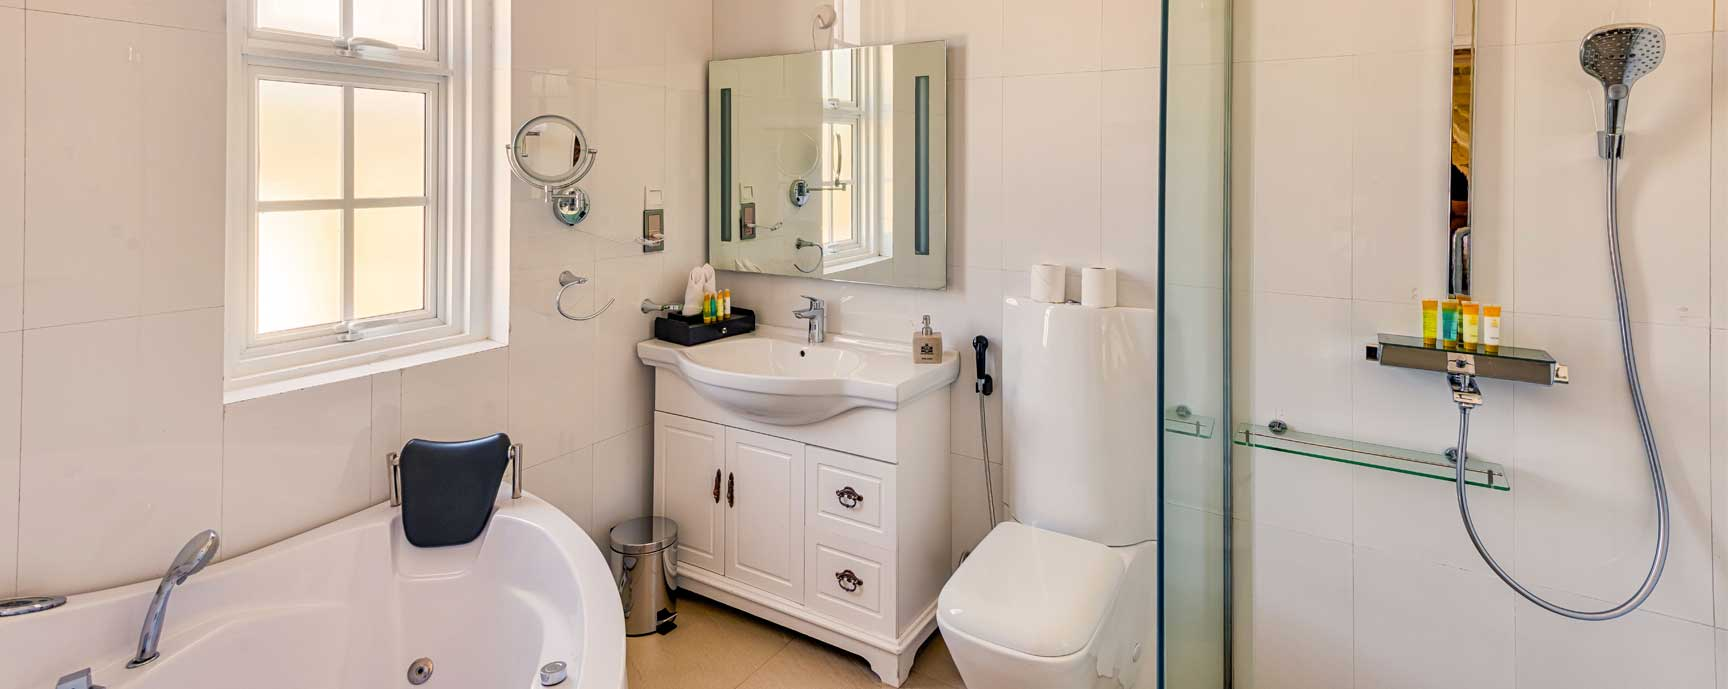 Premier Deluxe bathroom facilities